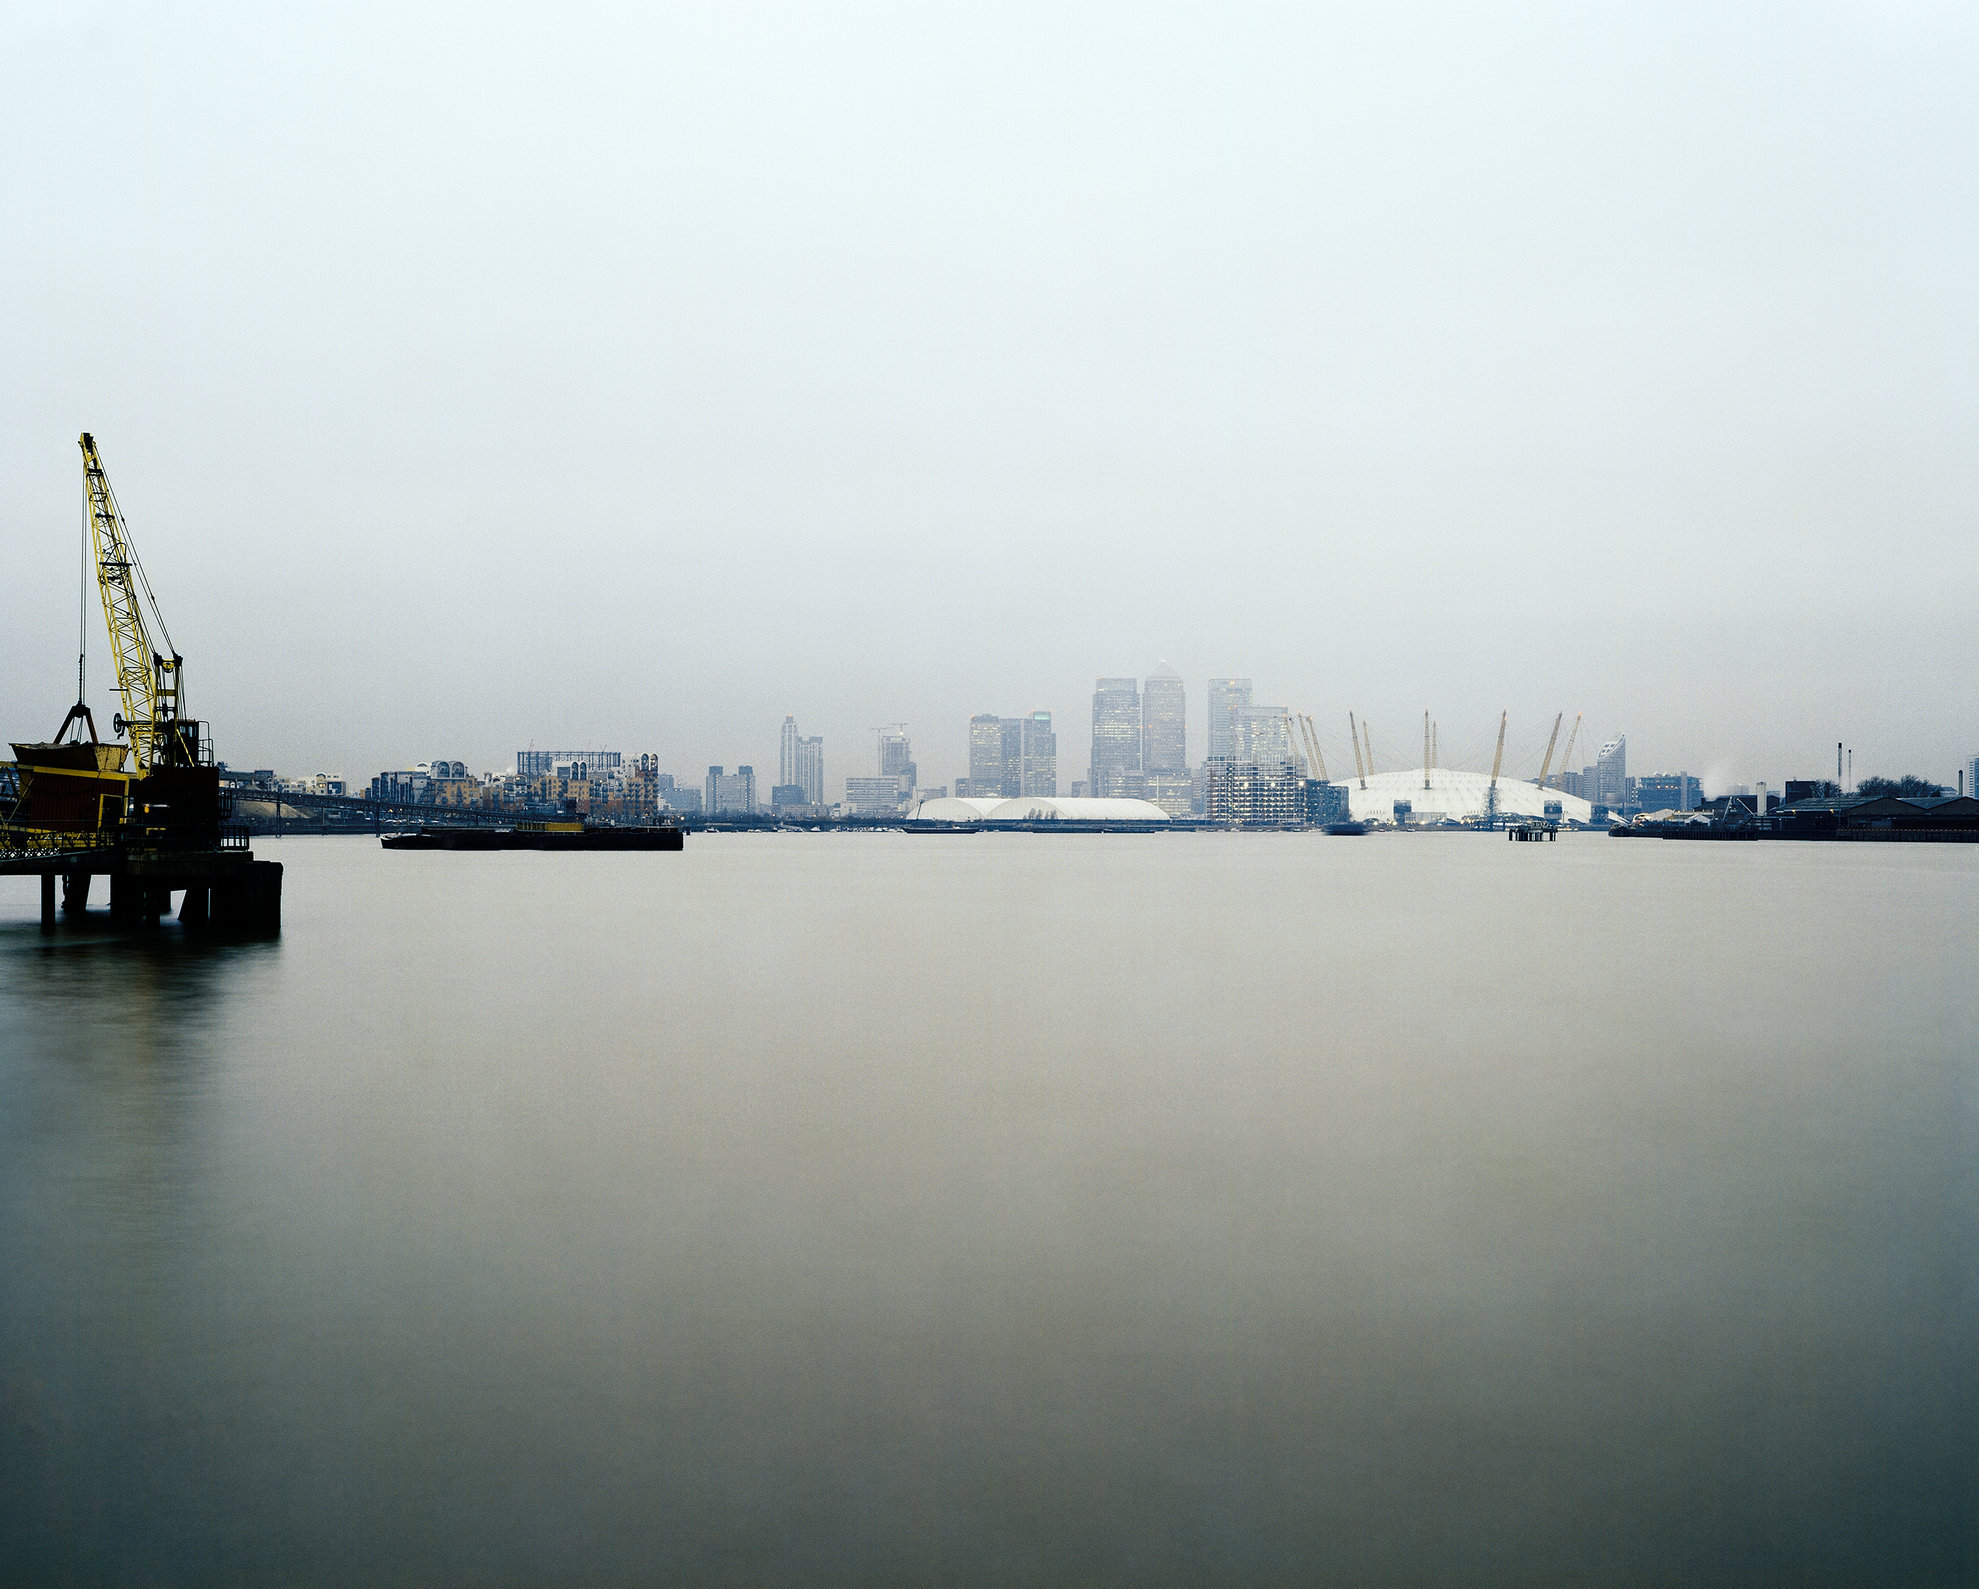 View of The O2 (Millennium Dome), Canary Wharf and the Thames in London.